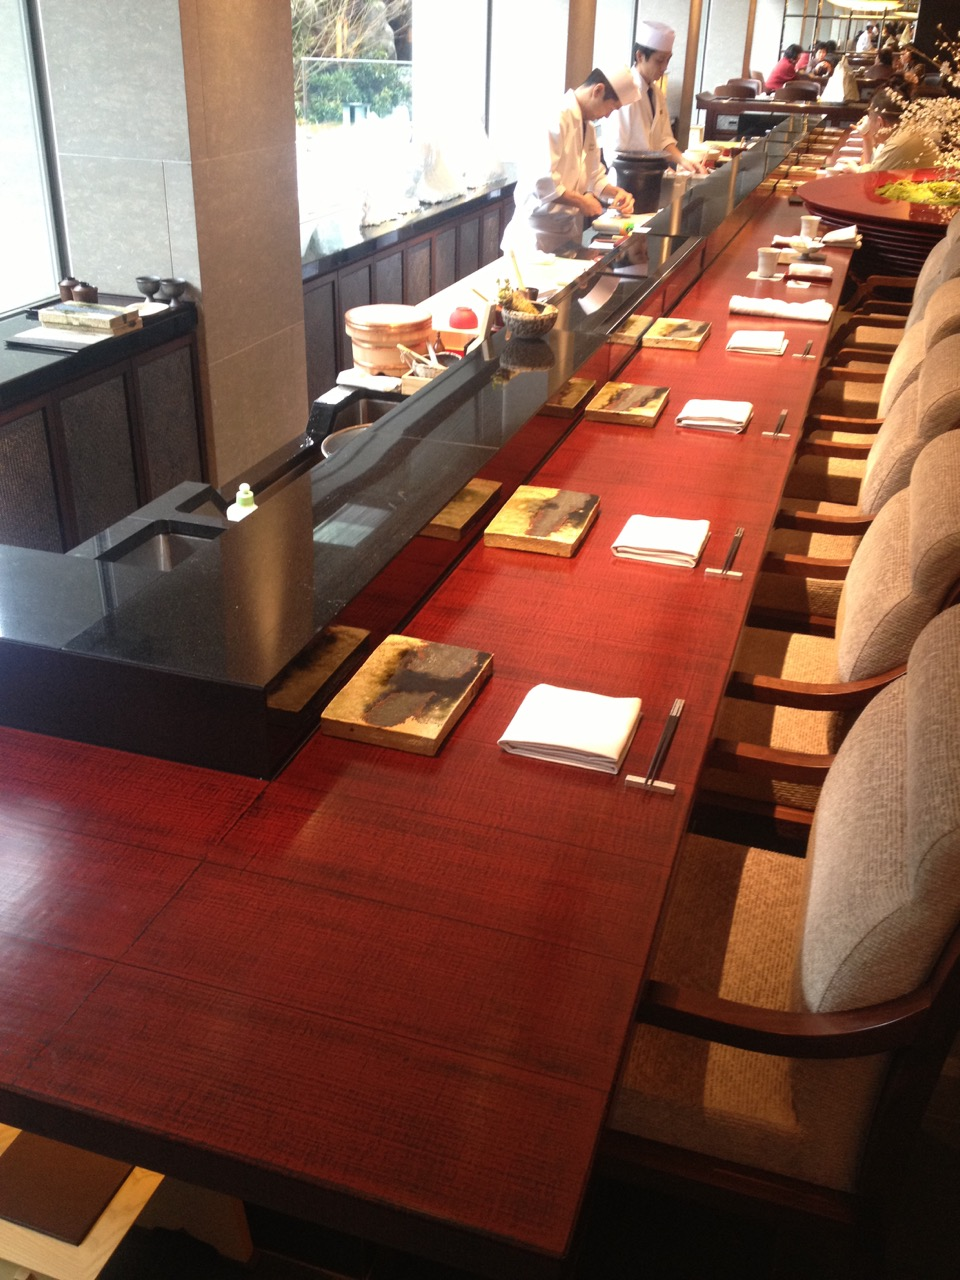 the living room with sky bar %e3%83%90%e3%82%a4%e3%83%88 rooms rugs from noto 2016 ritz carlton kyoto sushi hard wearing counter of cloth